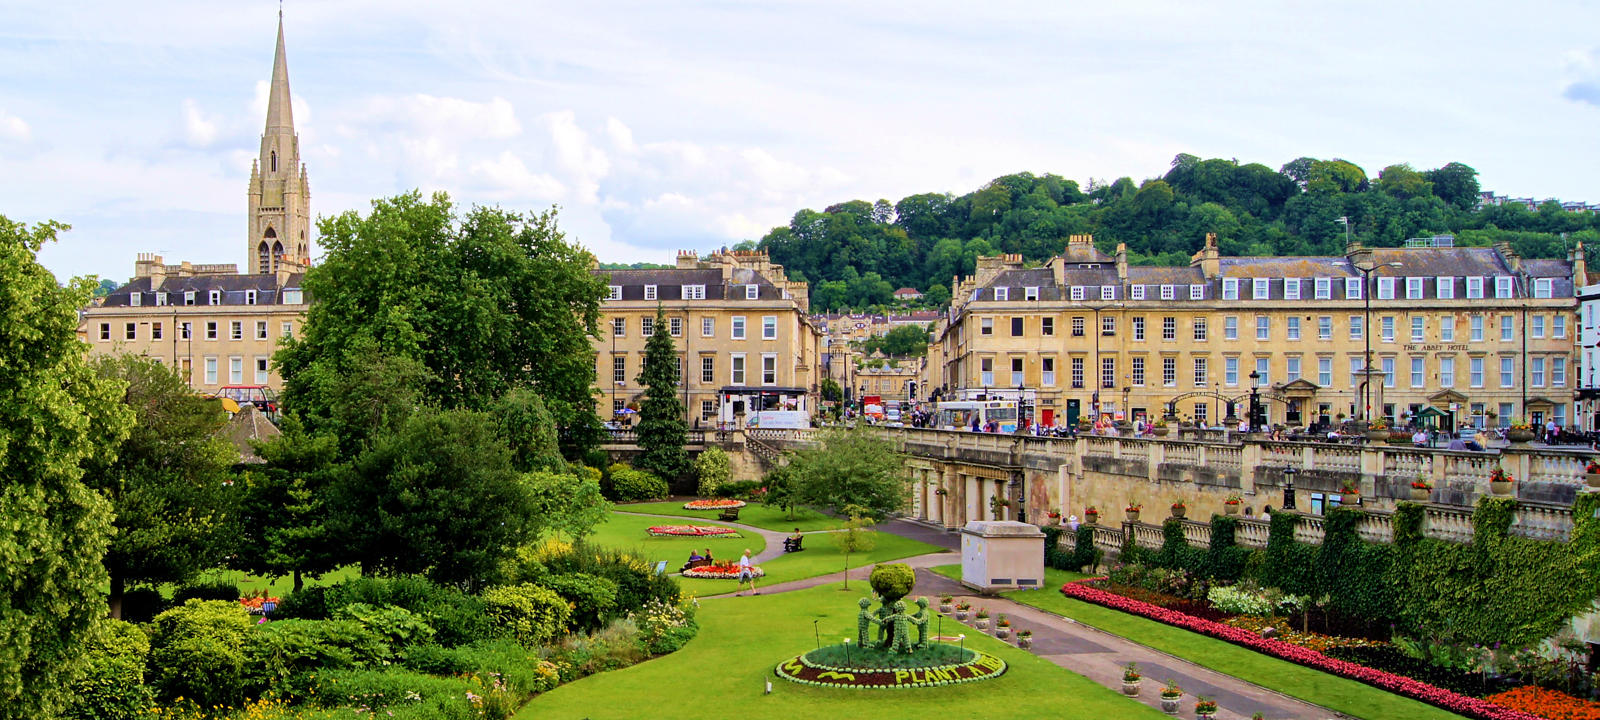 parade-gardens in bath